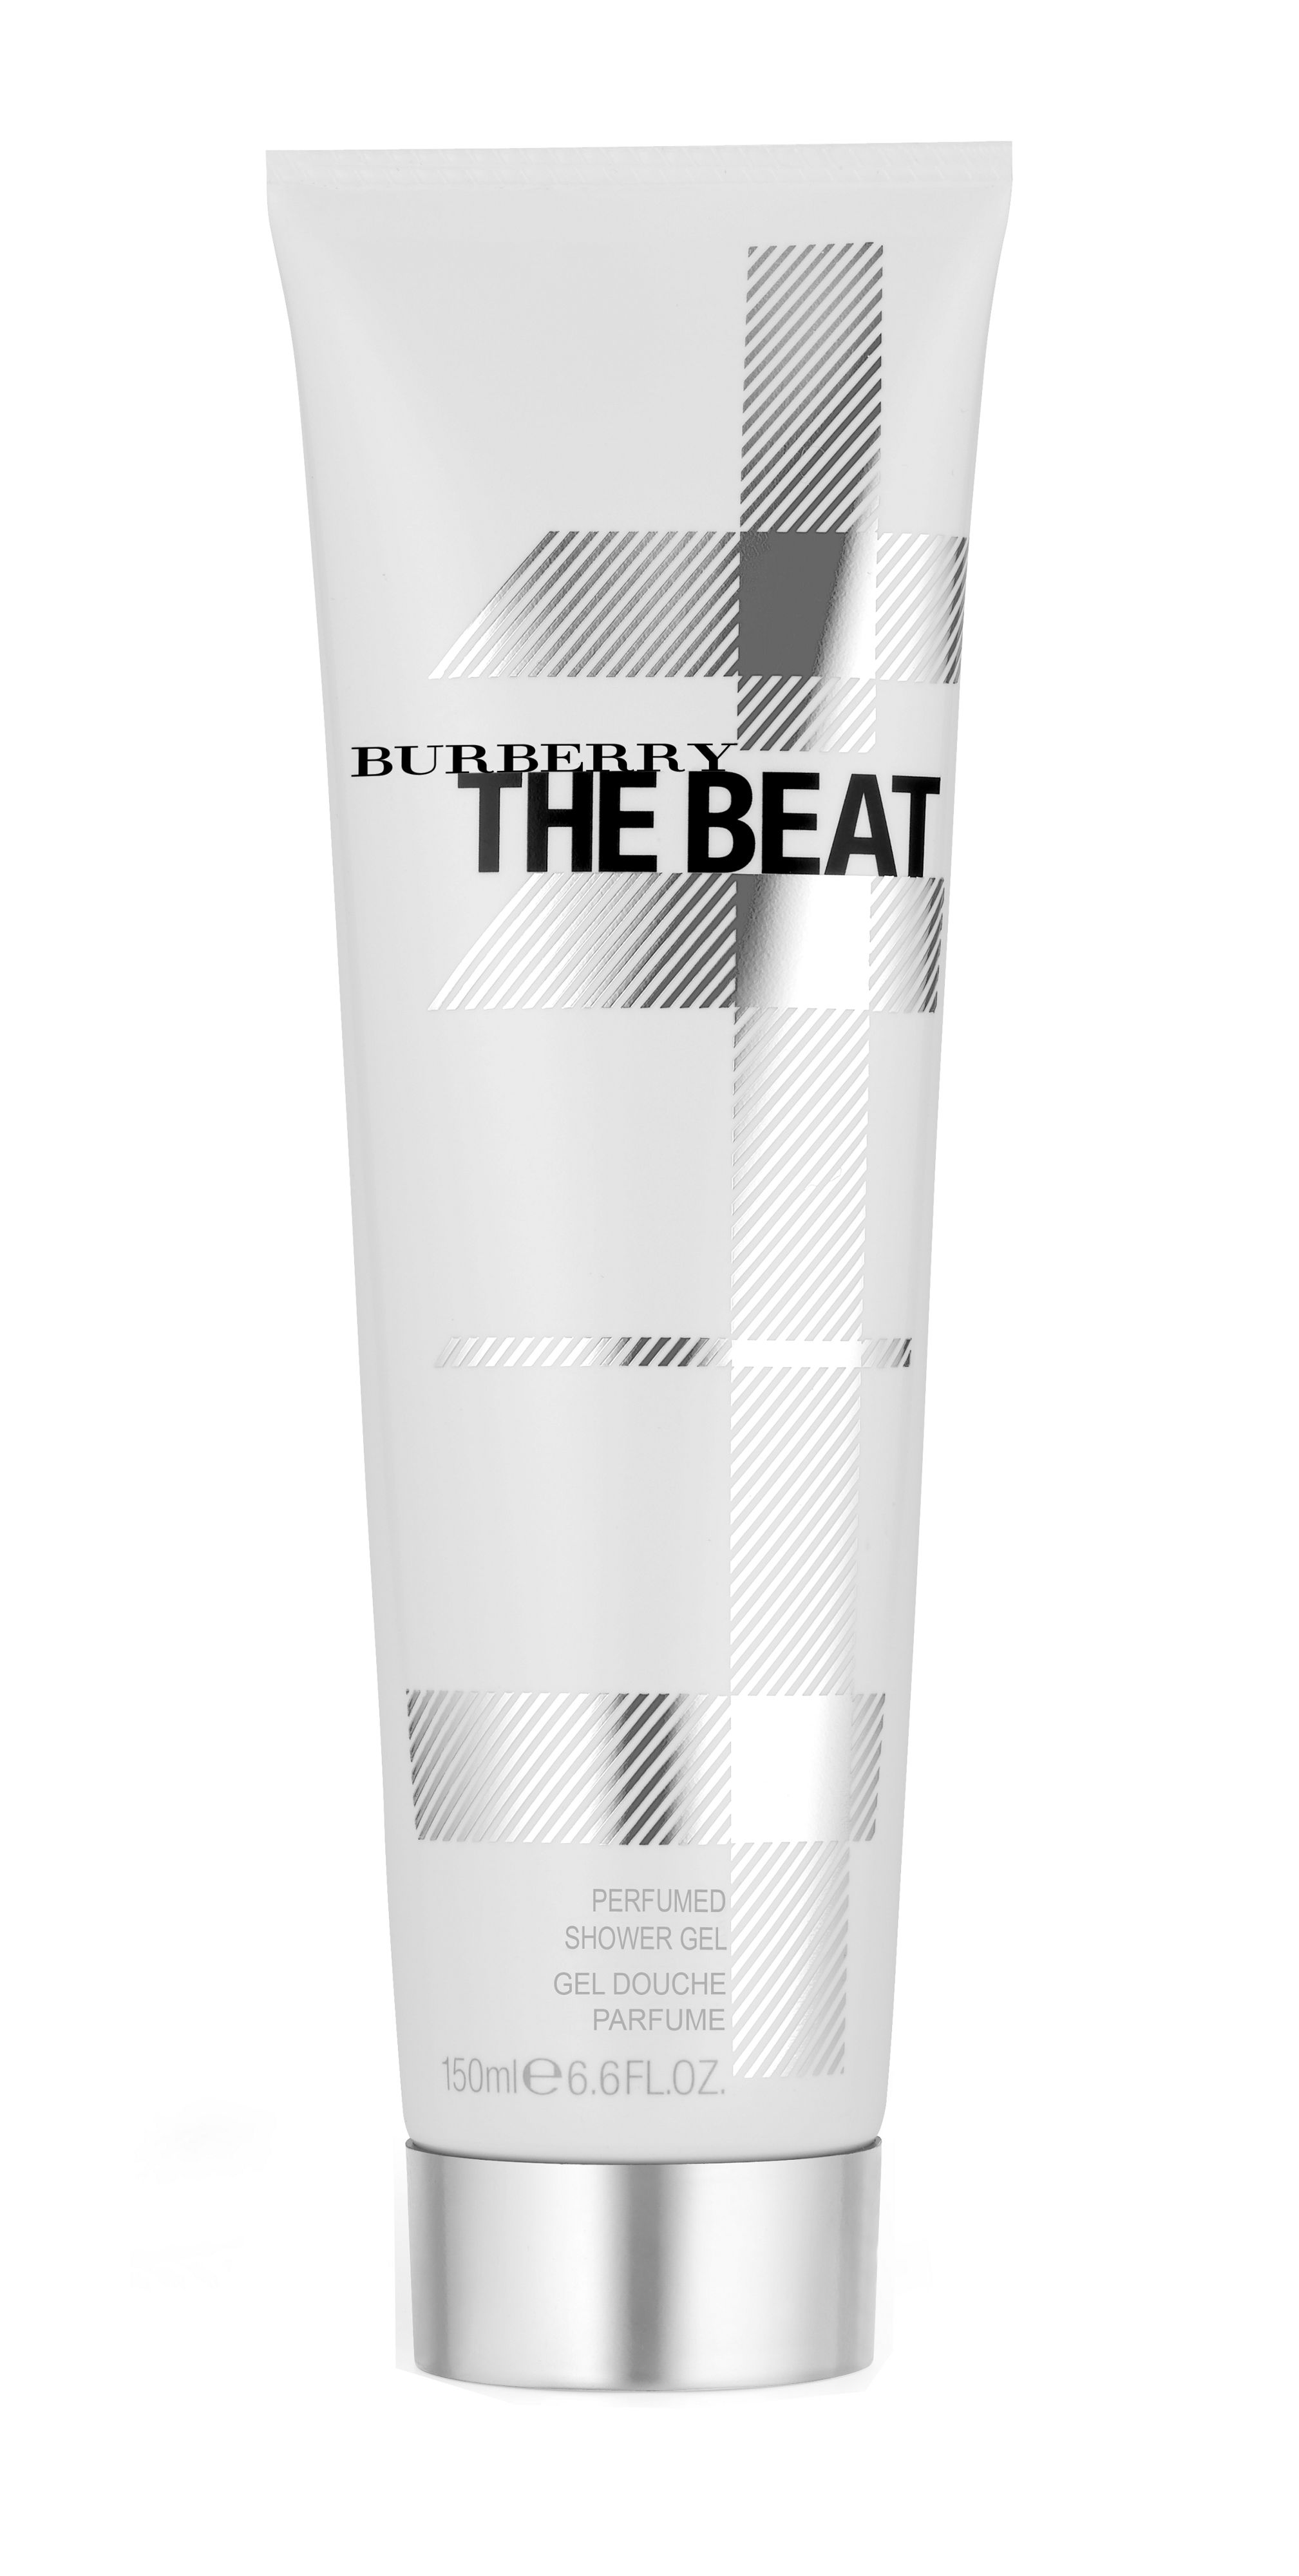 150ml The Beat shower gel